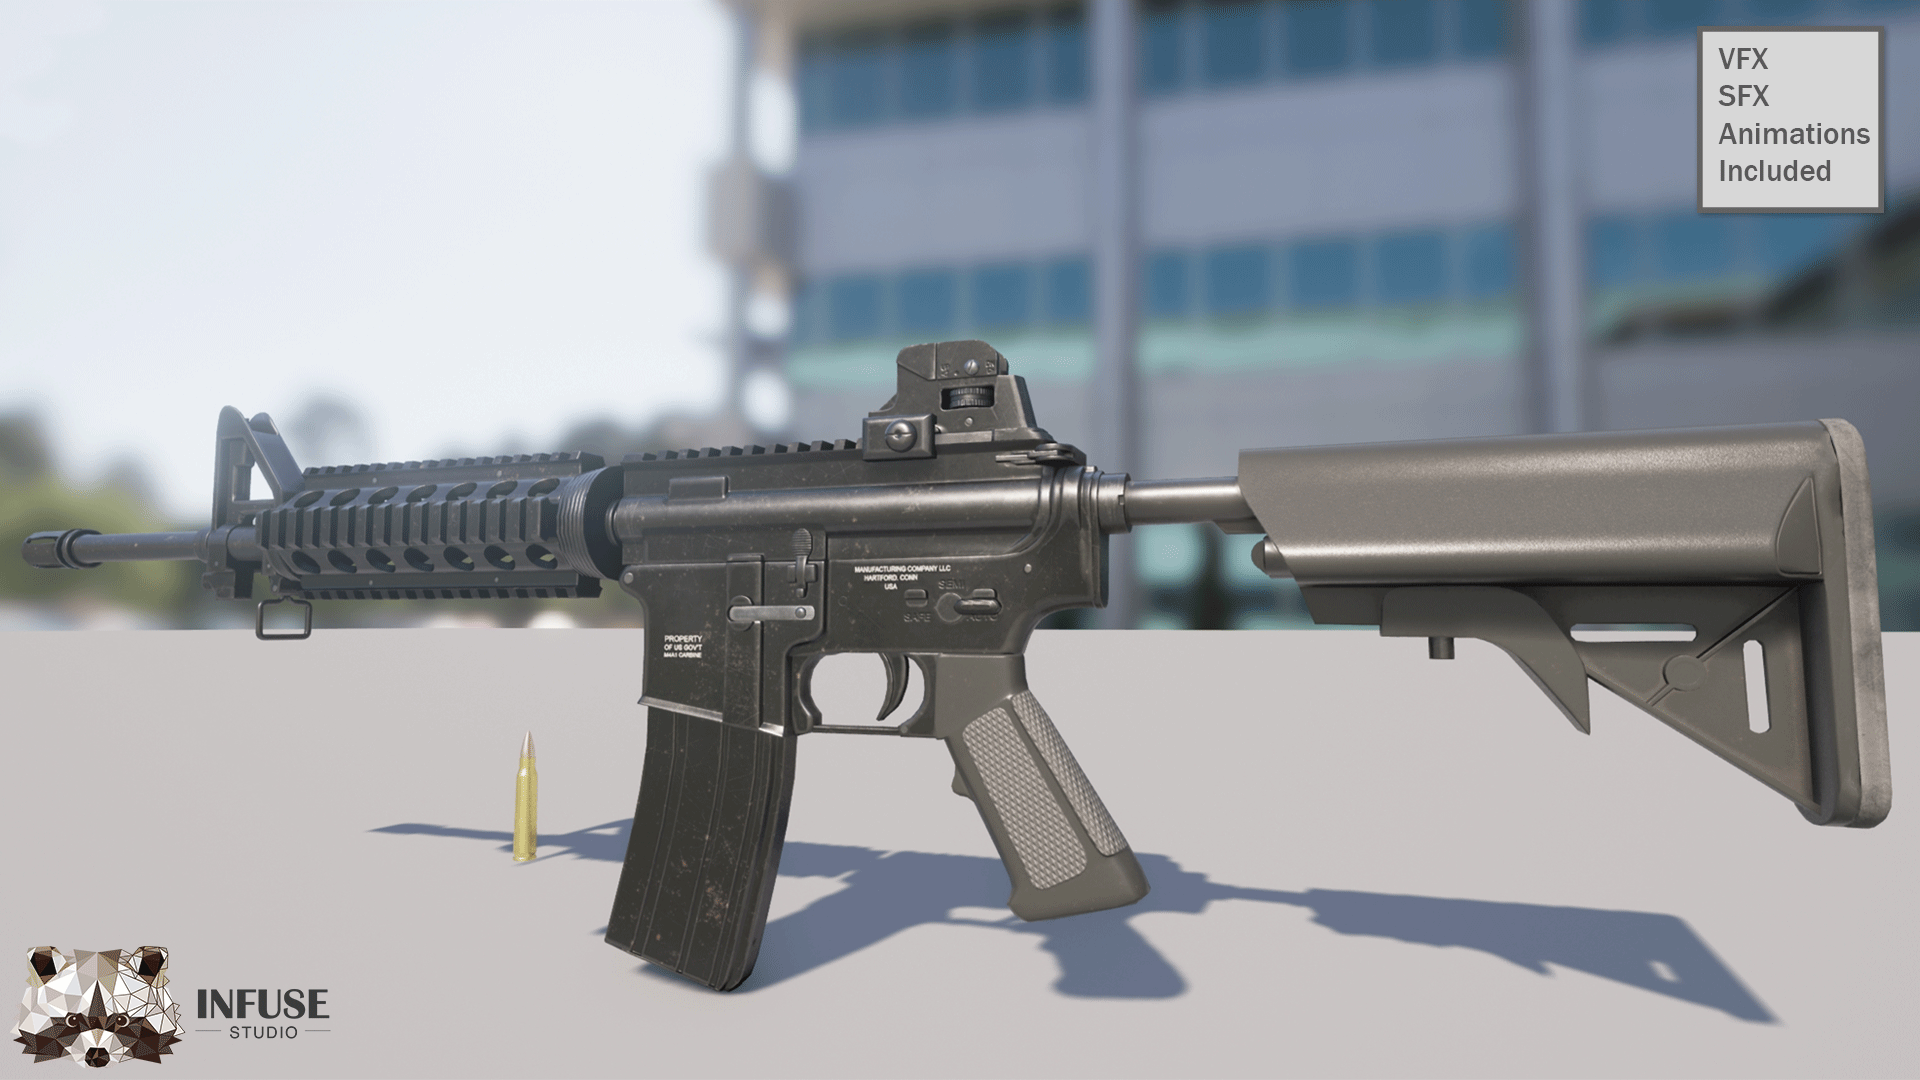 Animated M4A1 Assualt Rifle Pack by Infuse Studio in Weapons